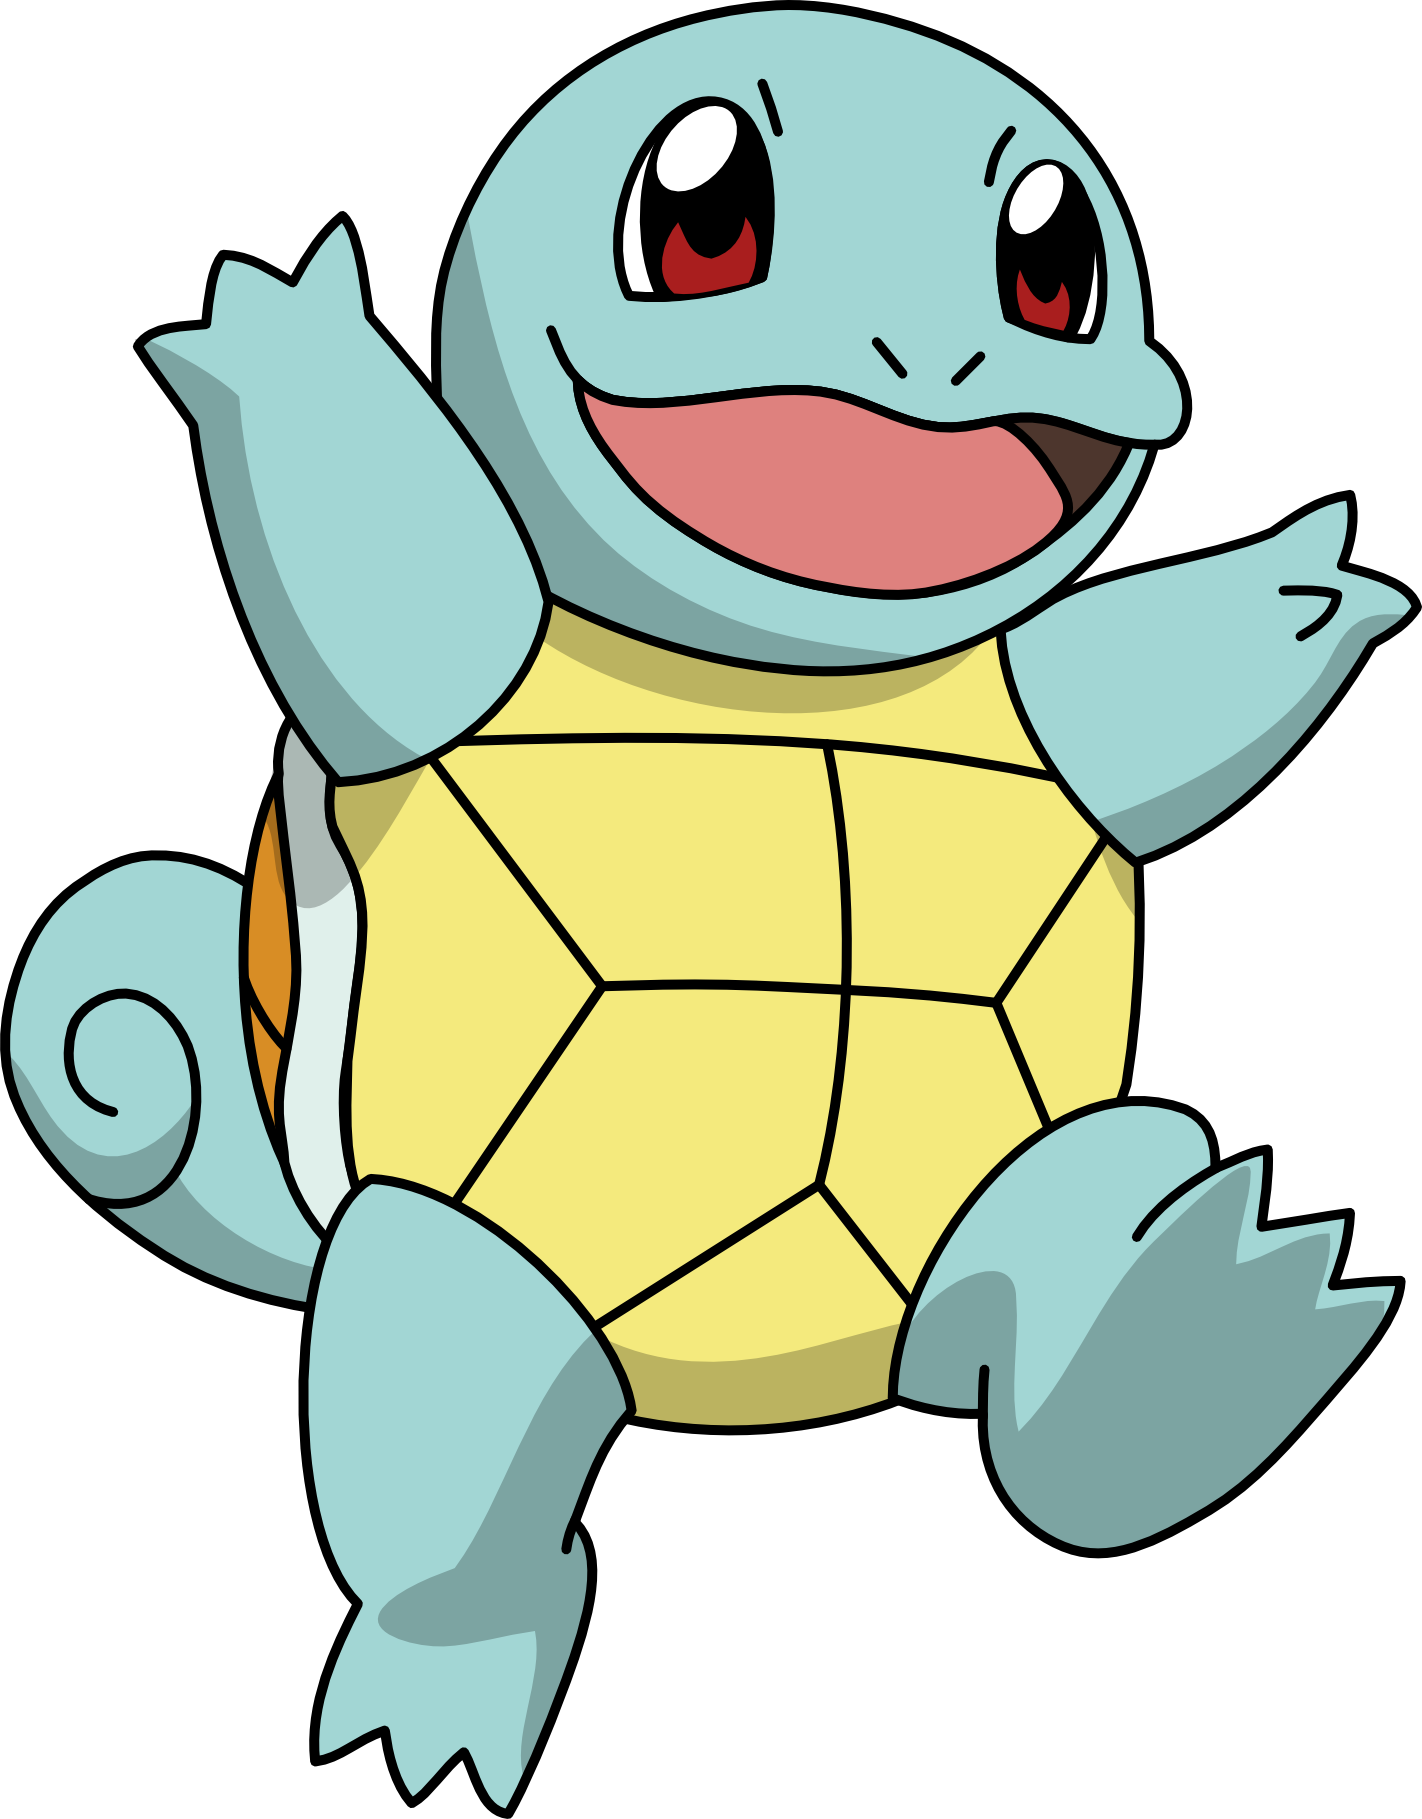 Squirtle png. Image result for costume